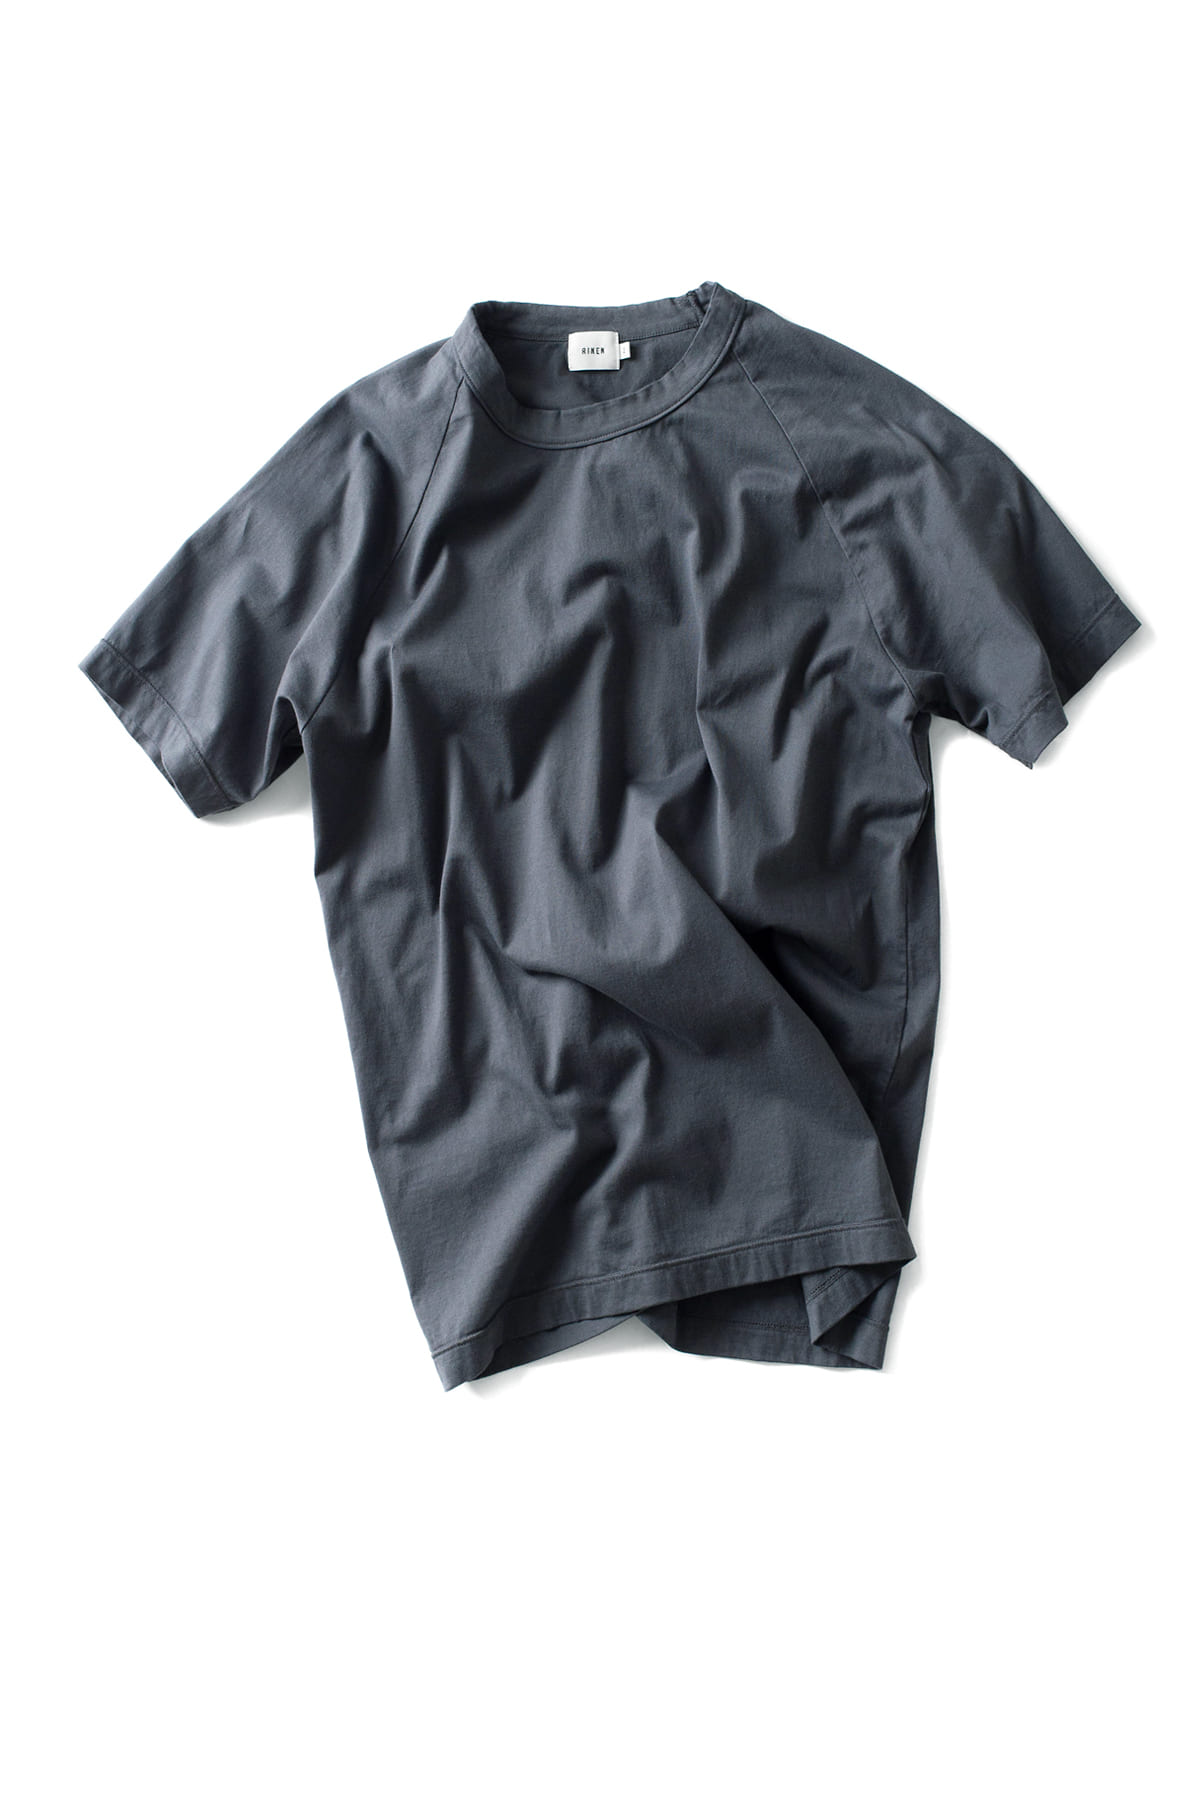 RINEN : Short Sleeved Crewneck 14809 (Charcoal)